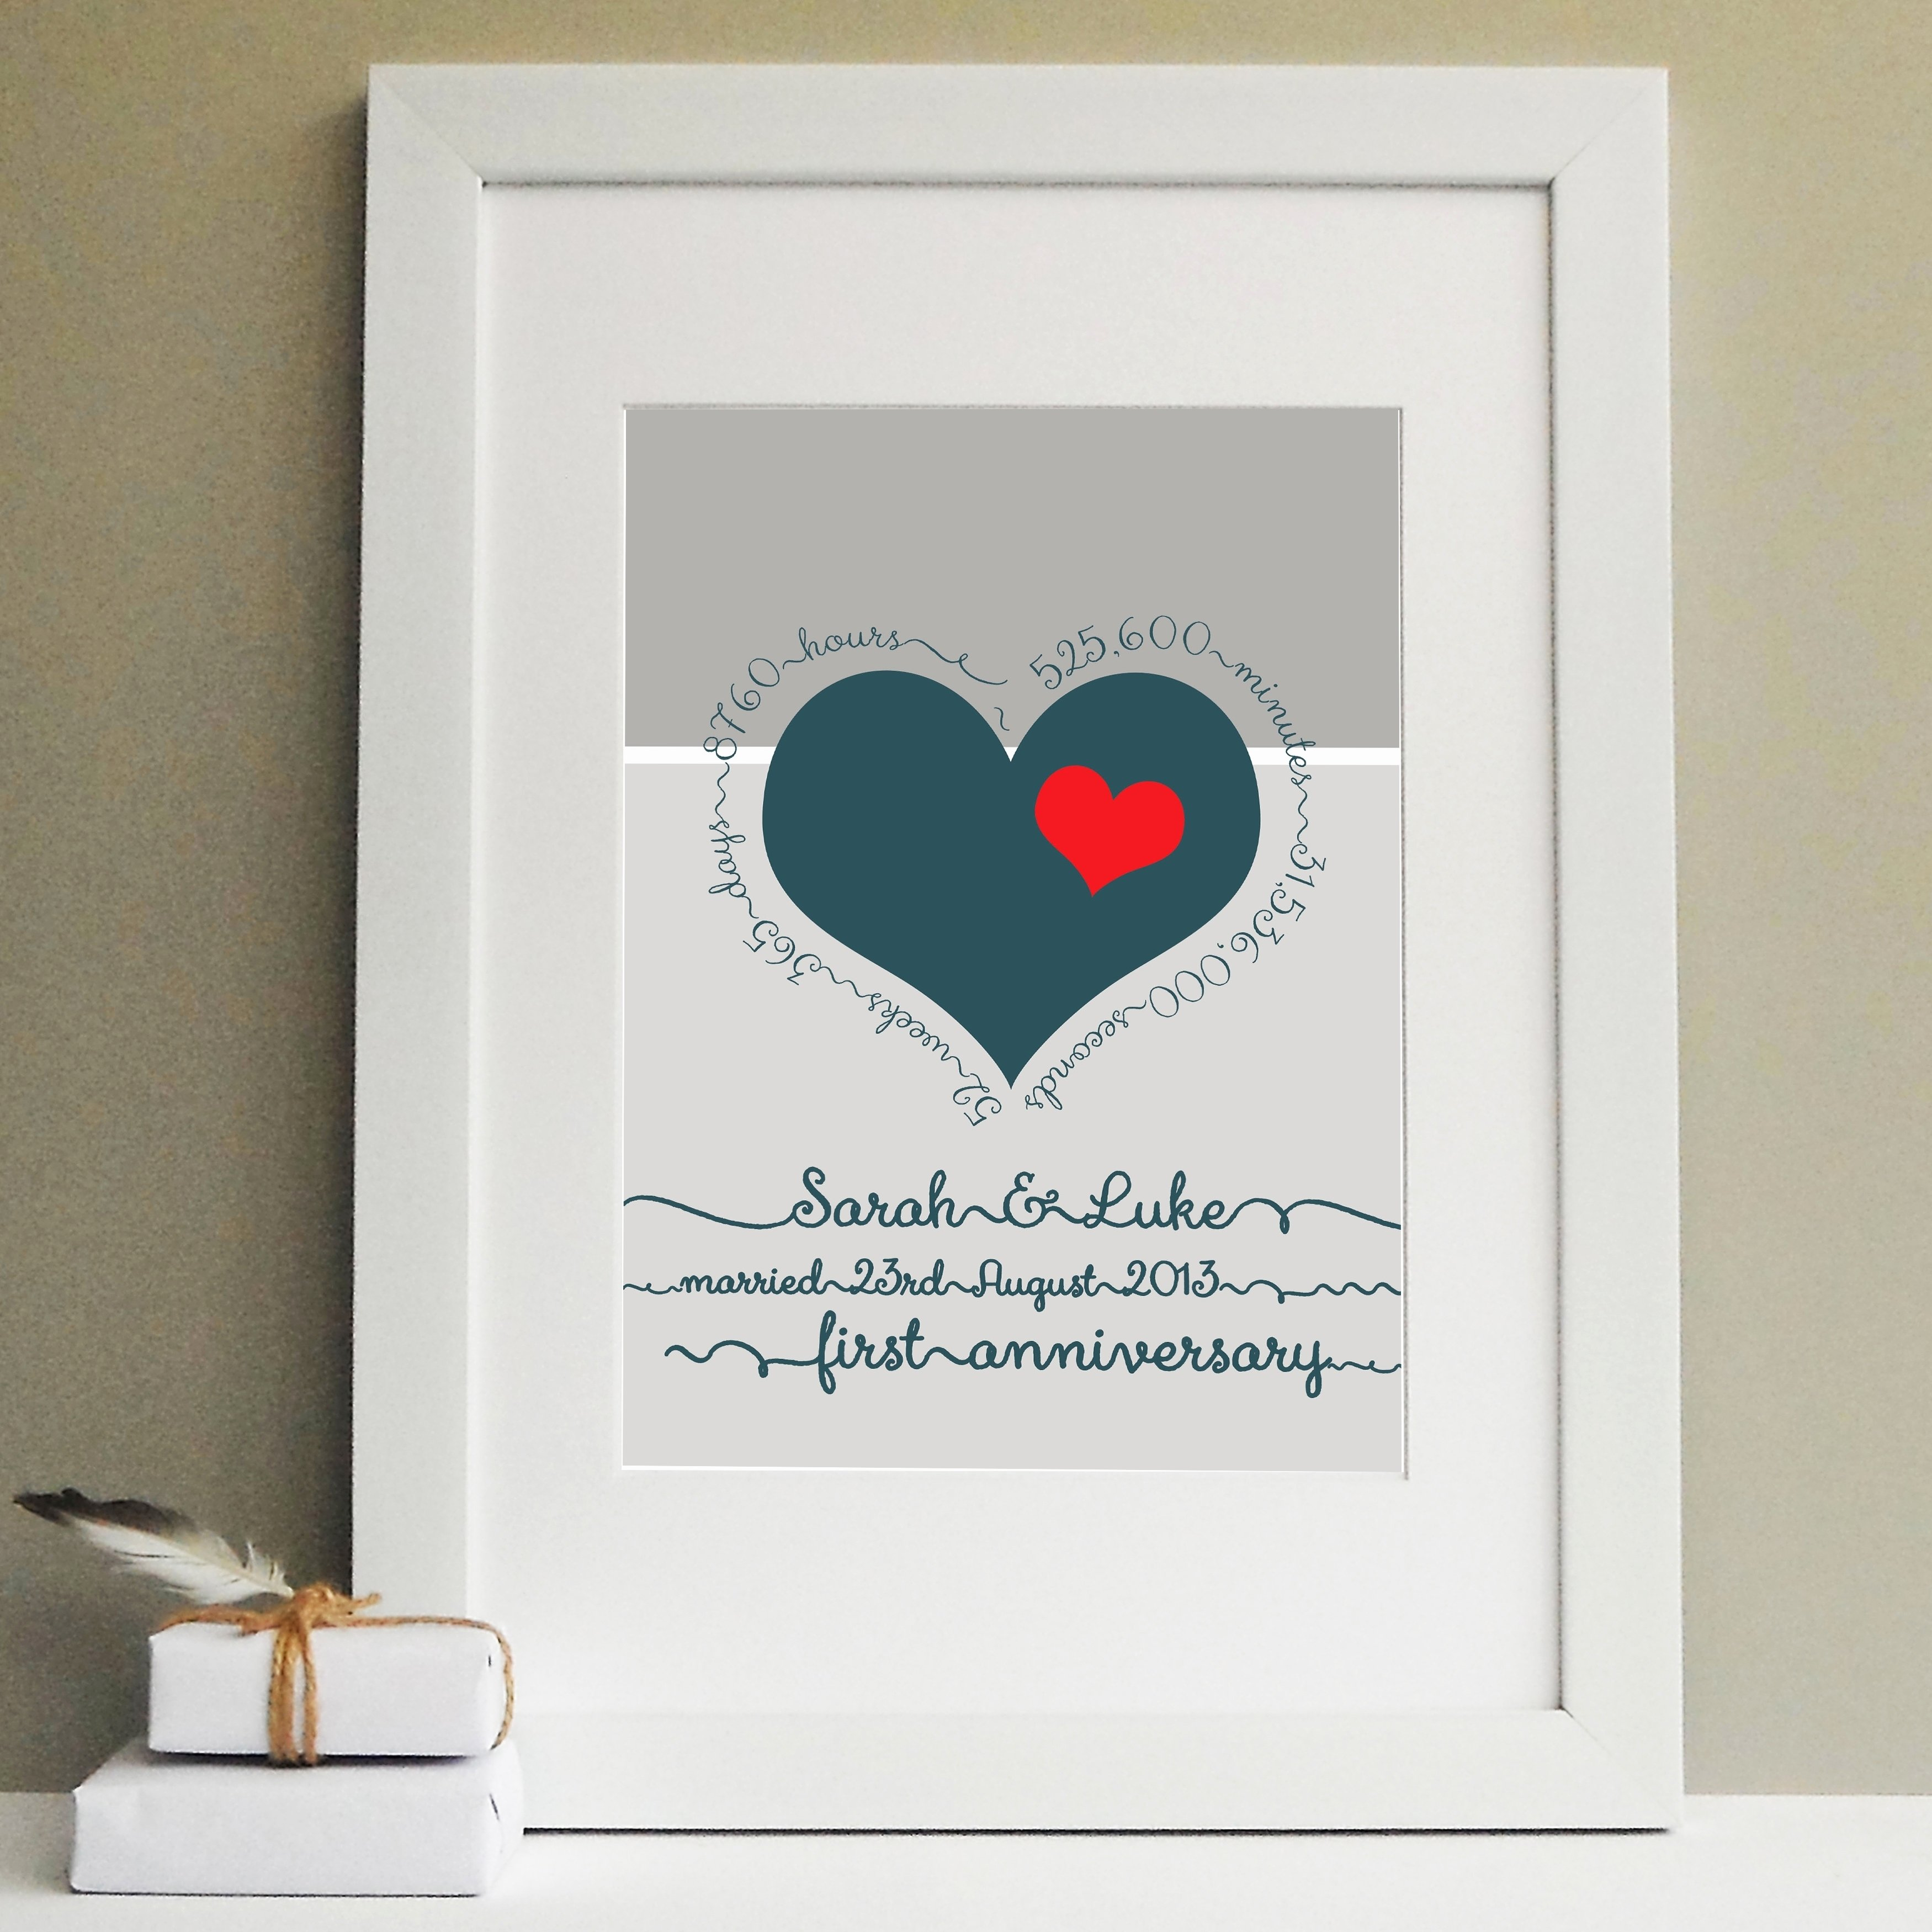 10 Amazing Gift Ideas For First Wedding Anniversary first wedding anniversary gift ideas luxury personalised first 2 2020